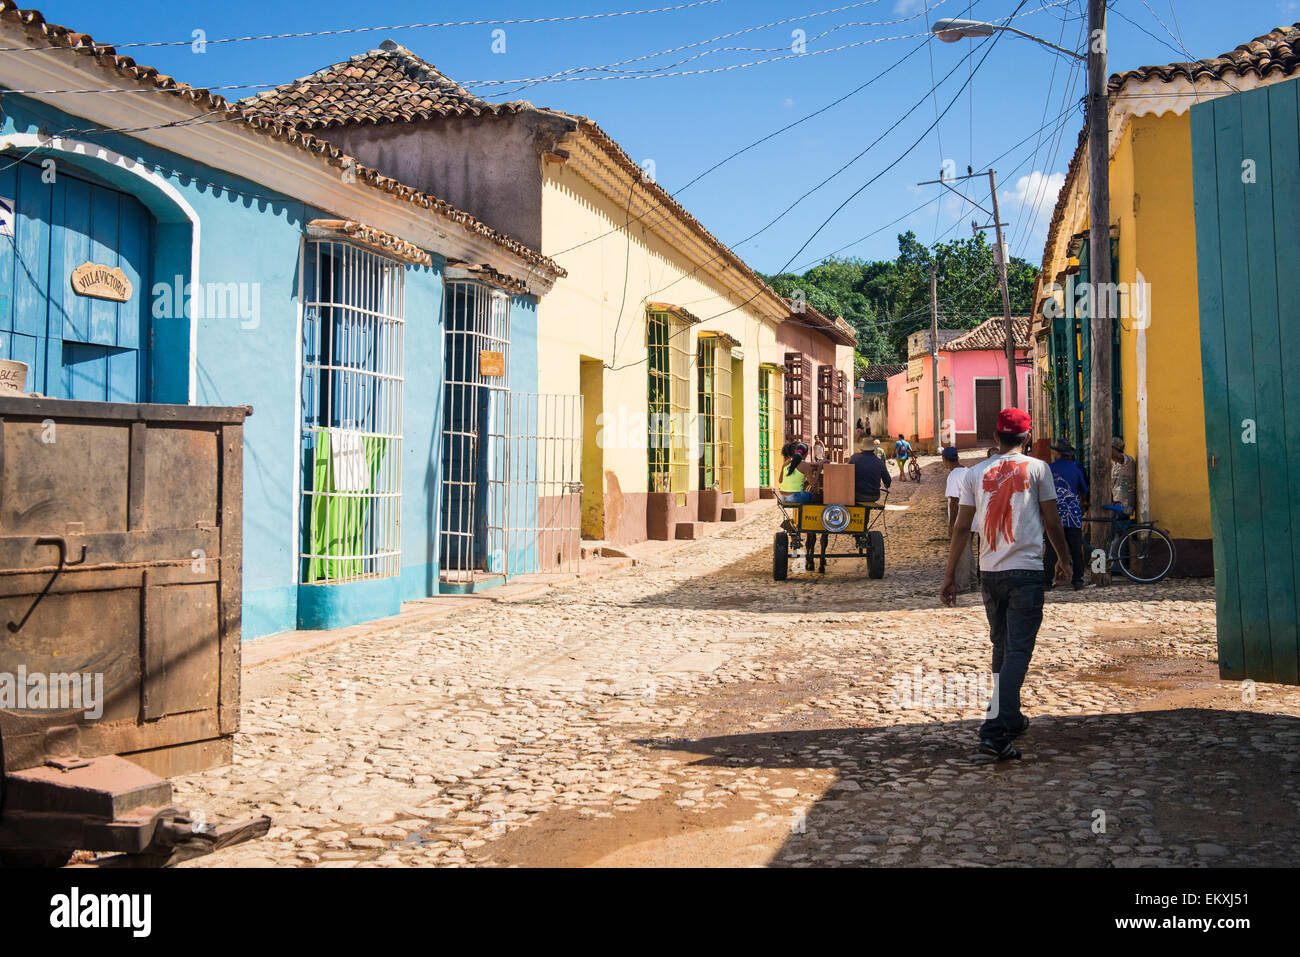 cuba trinidad typical street scene cuban houses homes with shutters stock photo 81104941 alamy. Black Bedroom Furniture Sets. Home Design Ideas